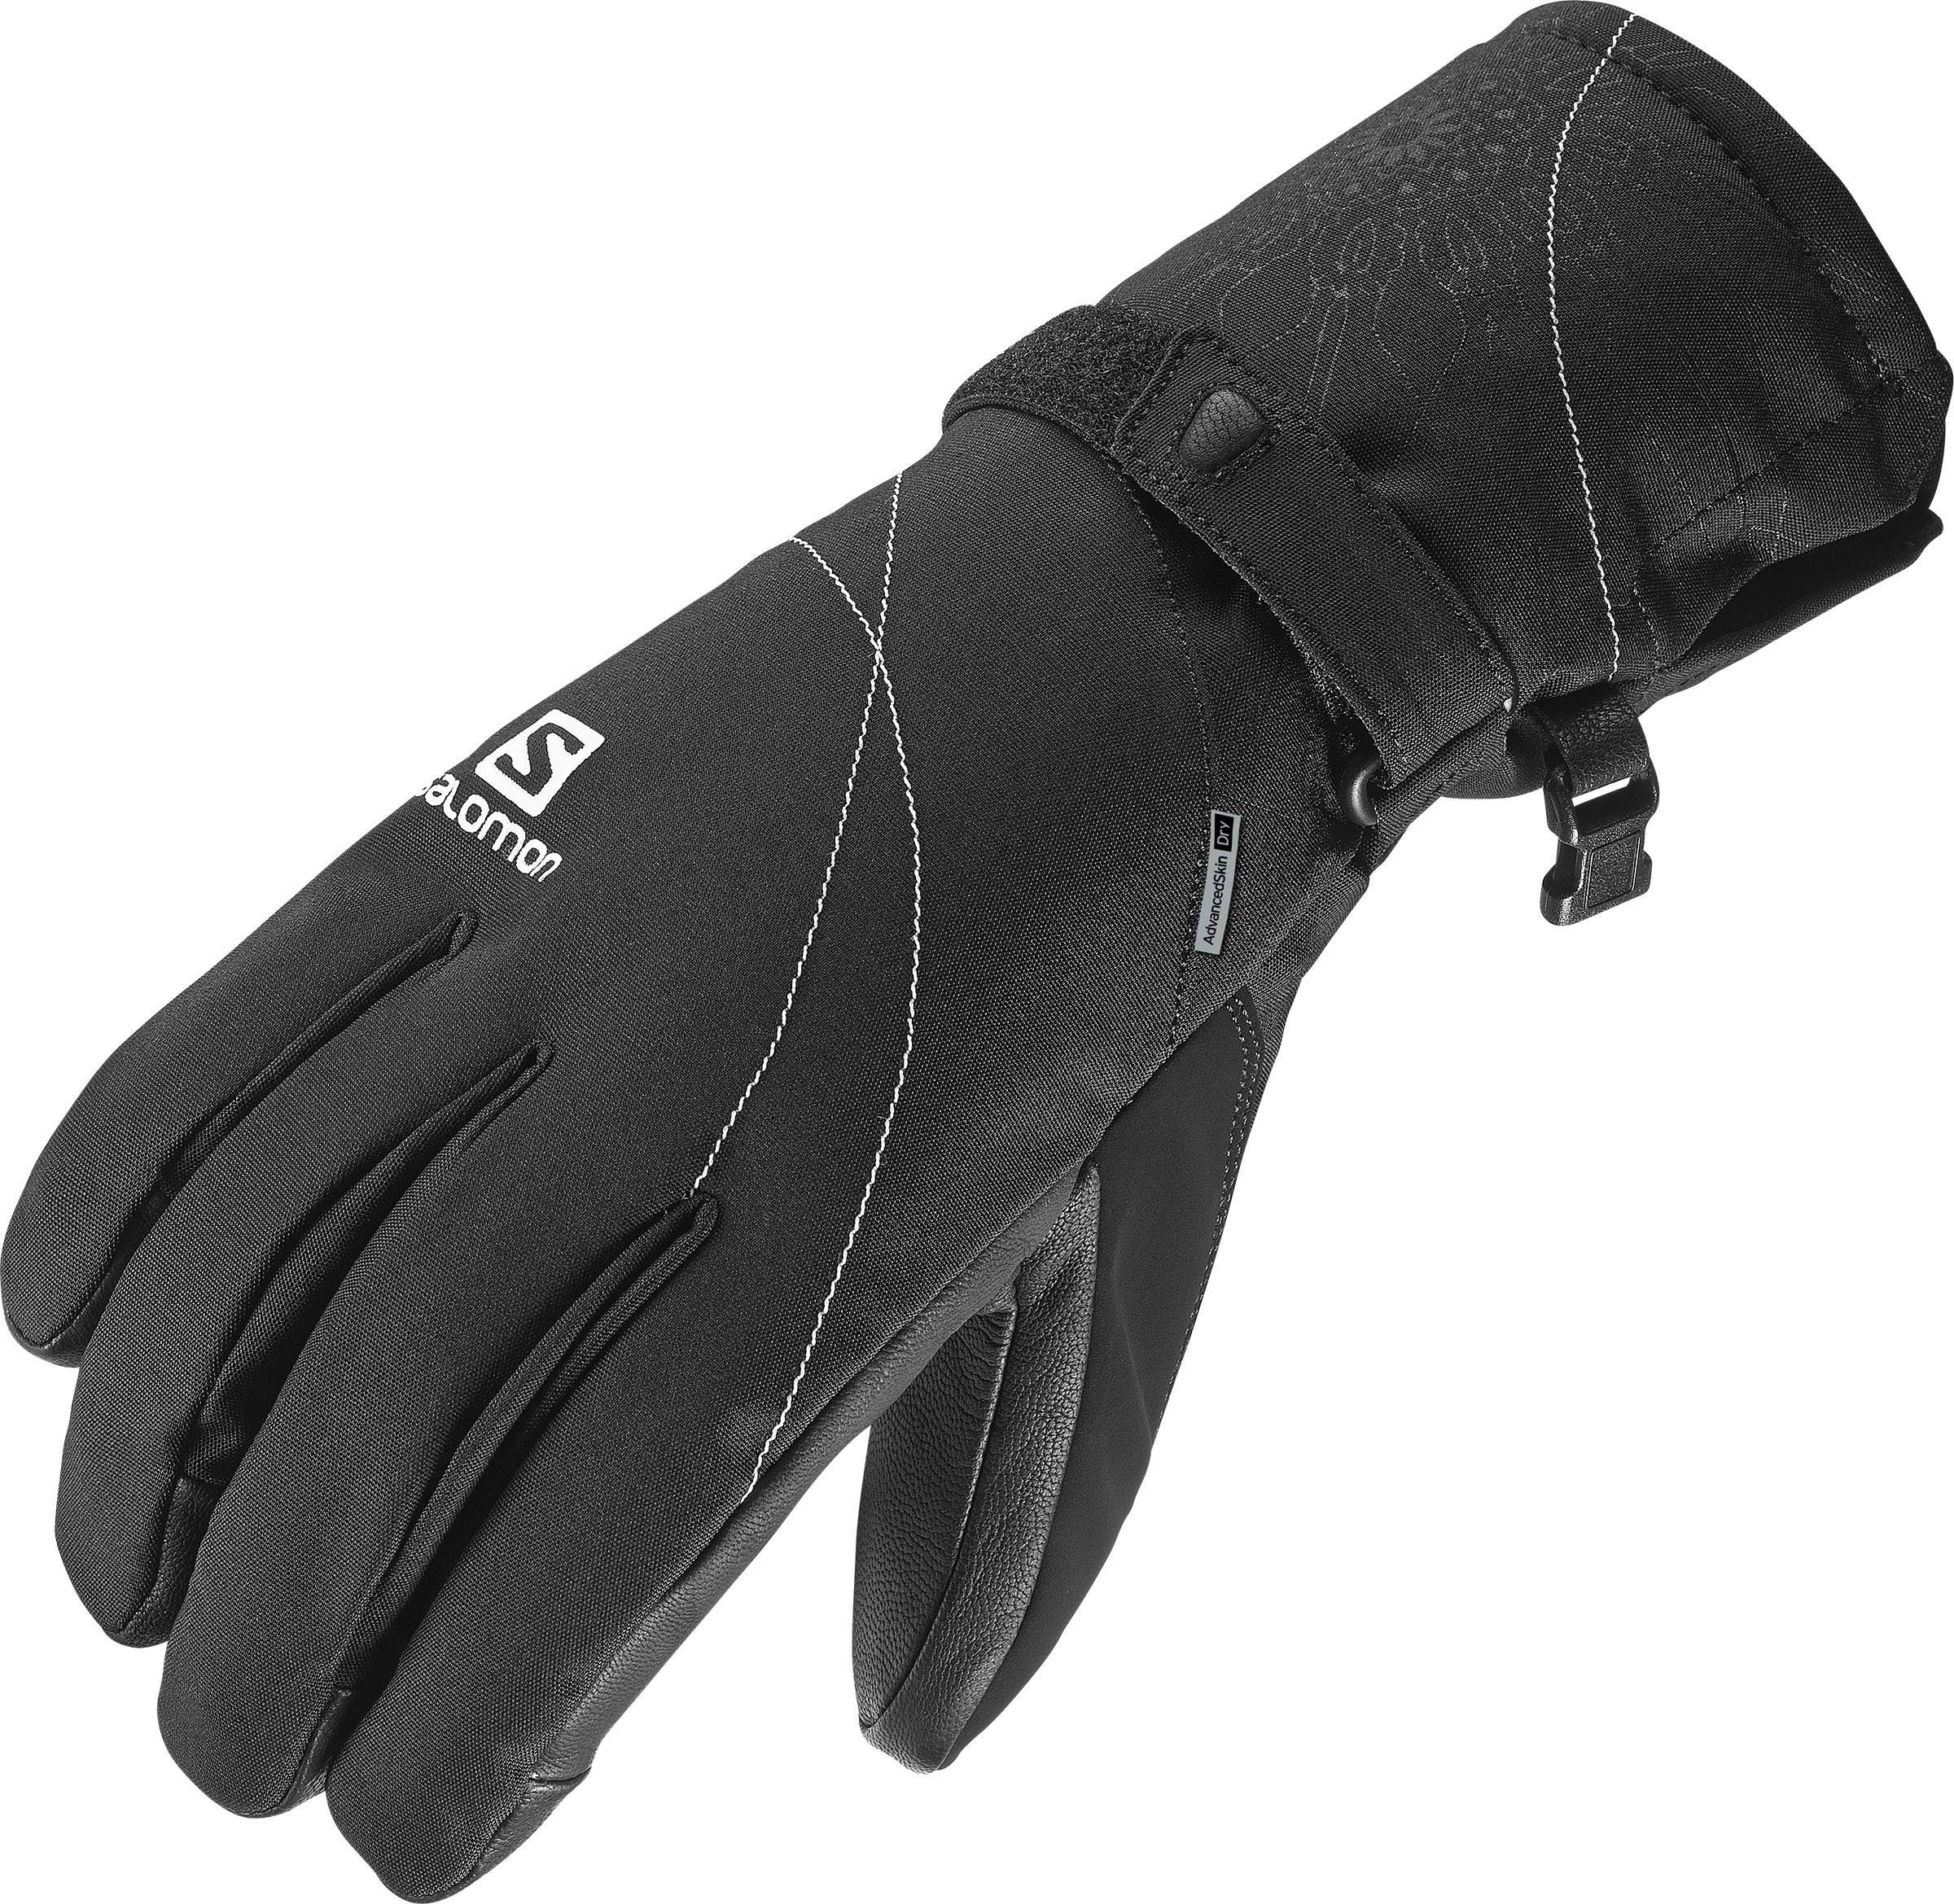 Salomon Women's Propeller Dry Gloves, Black, Medium